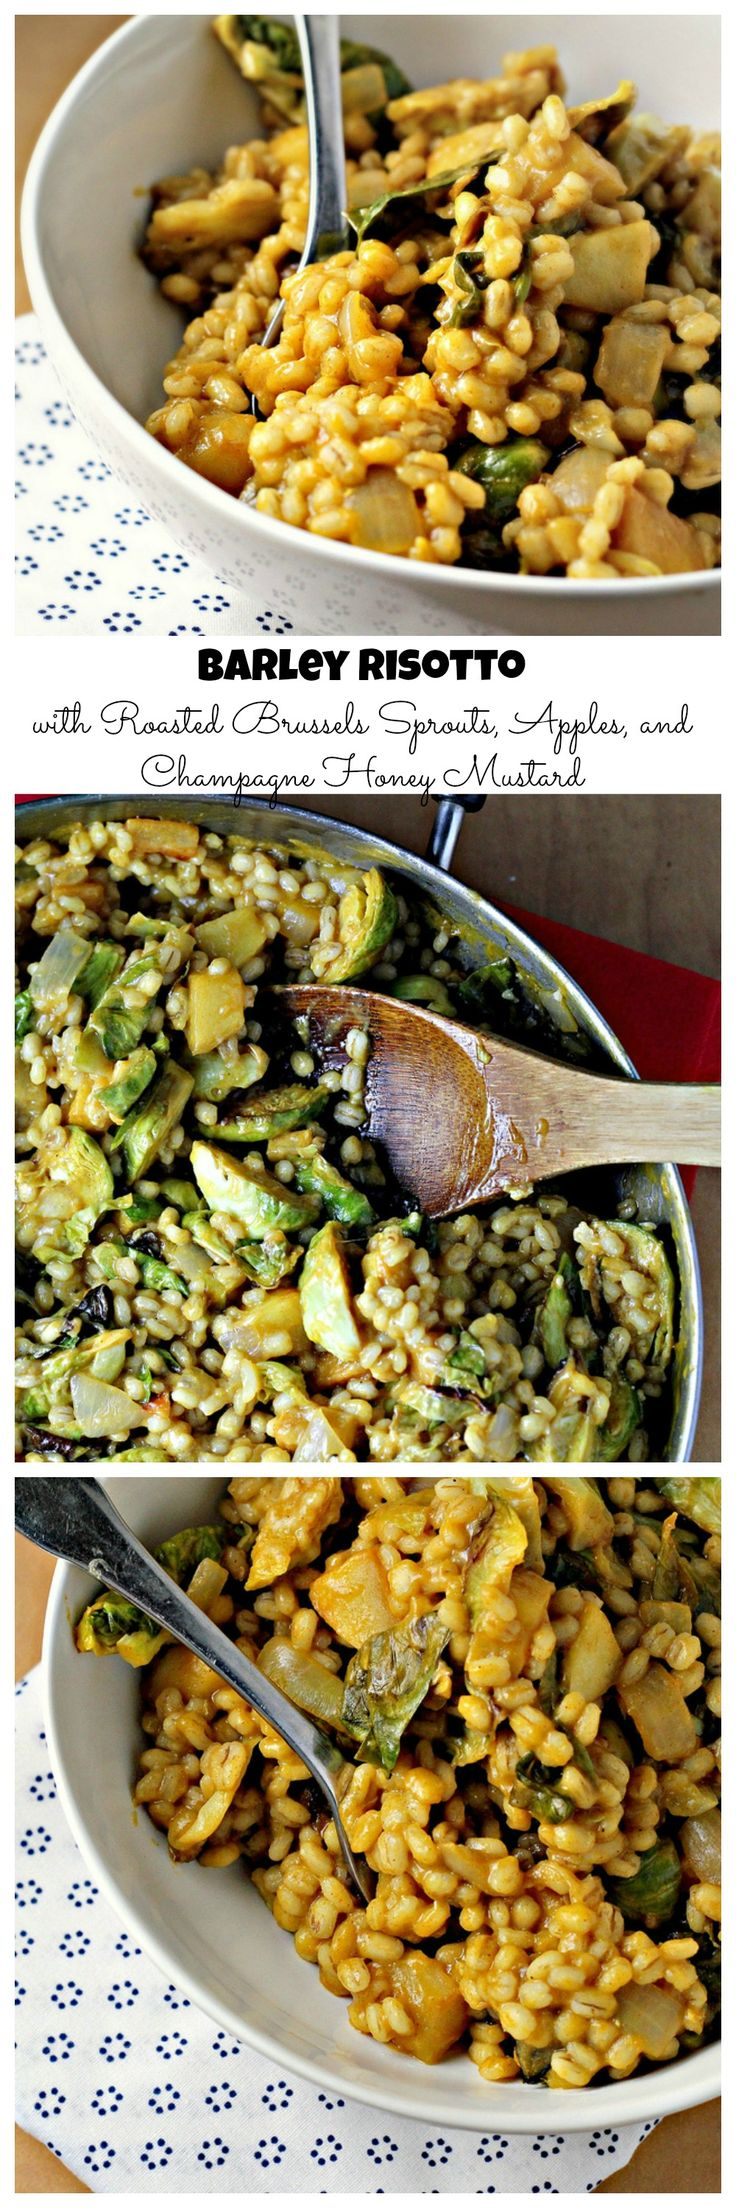 Barley Risotto with Roasted Brussels Sprouts, Apples and Champagne